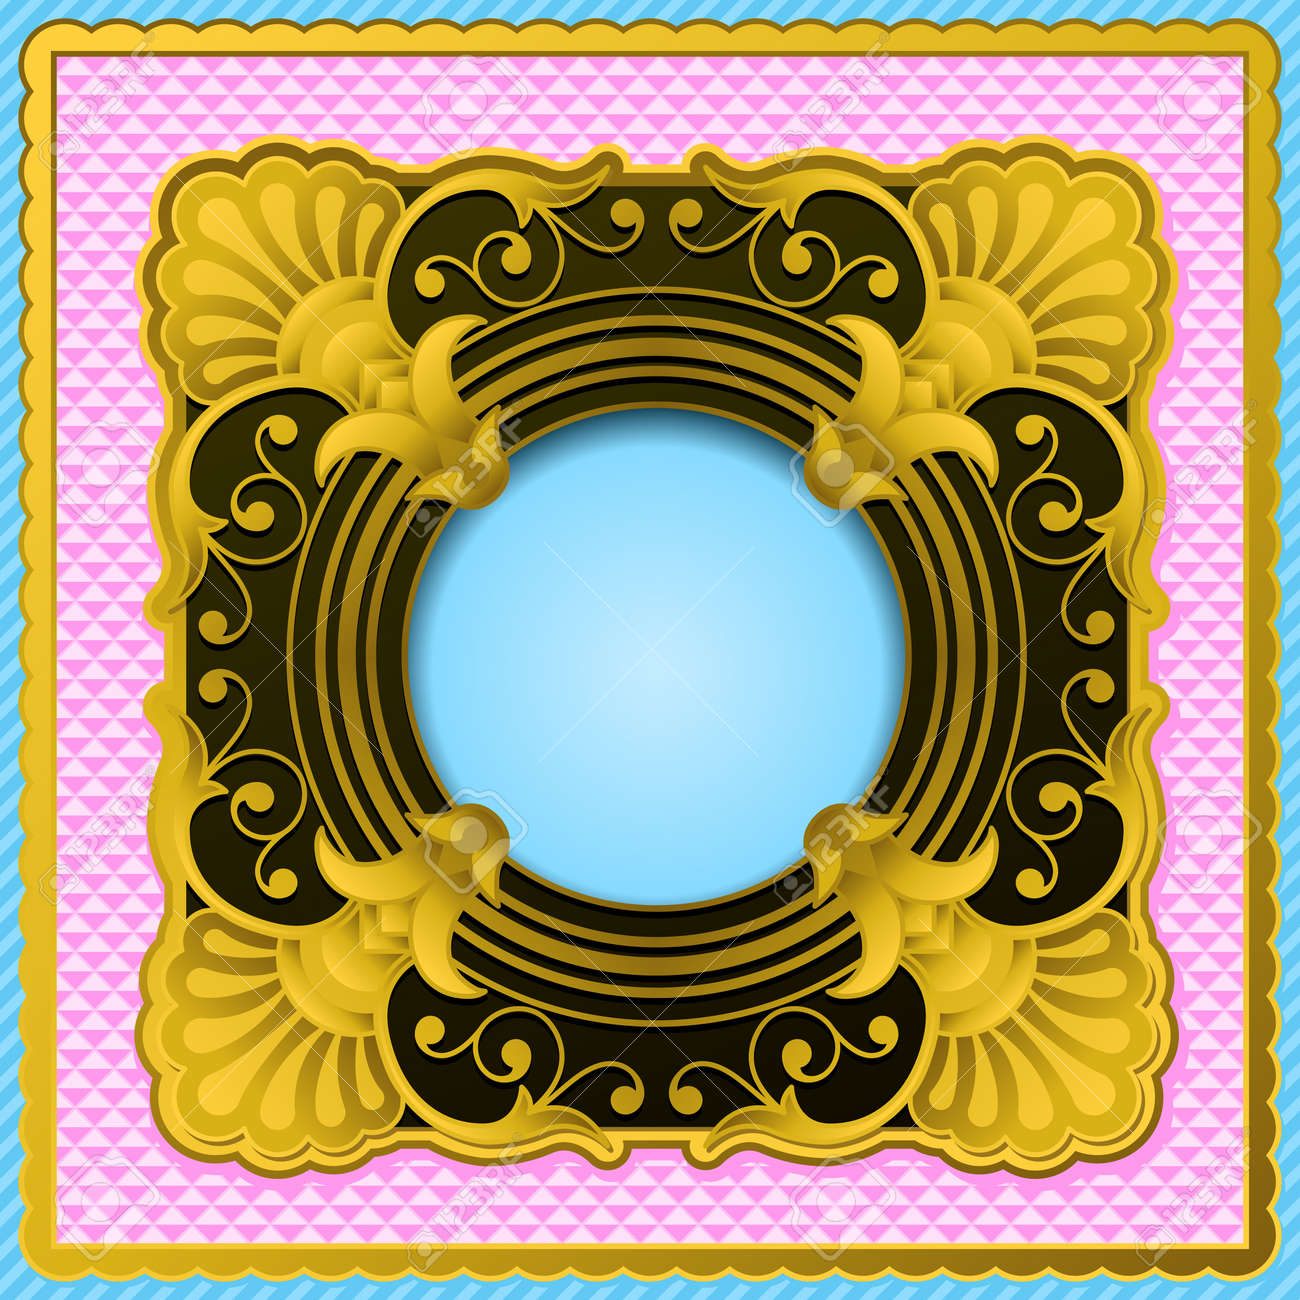 Ornate antique gold and black frame on a pink border with a ornate antique gold and black frame on a pink border with a central circular blue copyspace jeuxipadfo Image collections